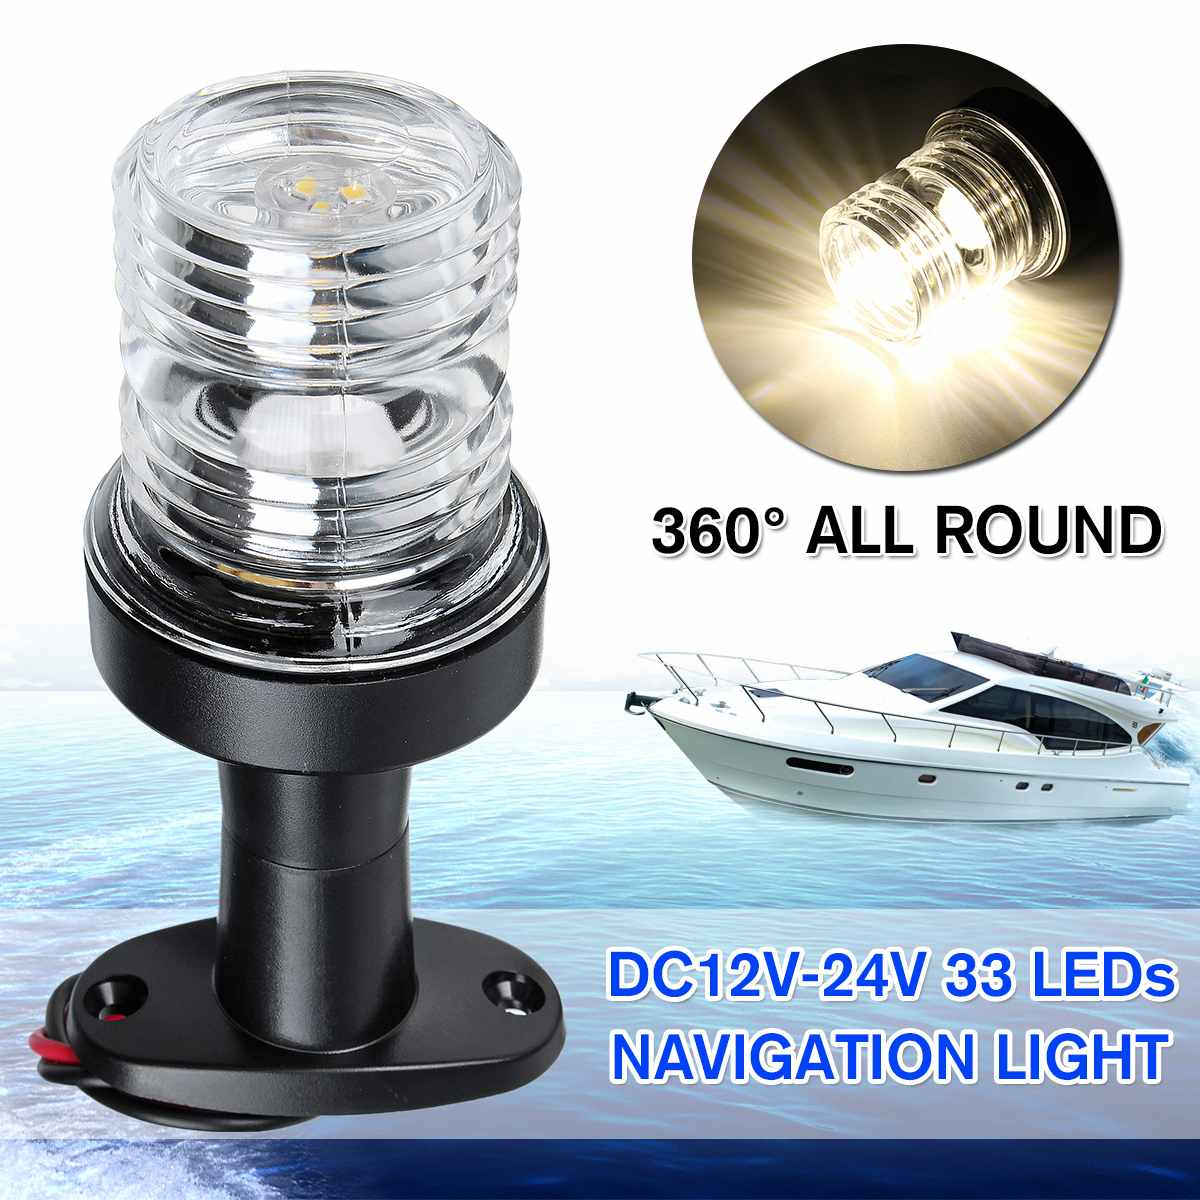 Marine Boat Yacht Stern Anchor LED Navigation Light All Round 360 Degree White Light 12V Dustproof Waterproof Super Bright